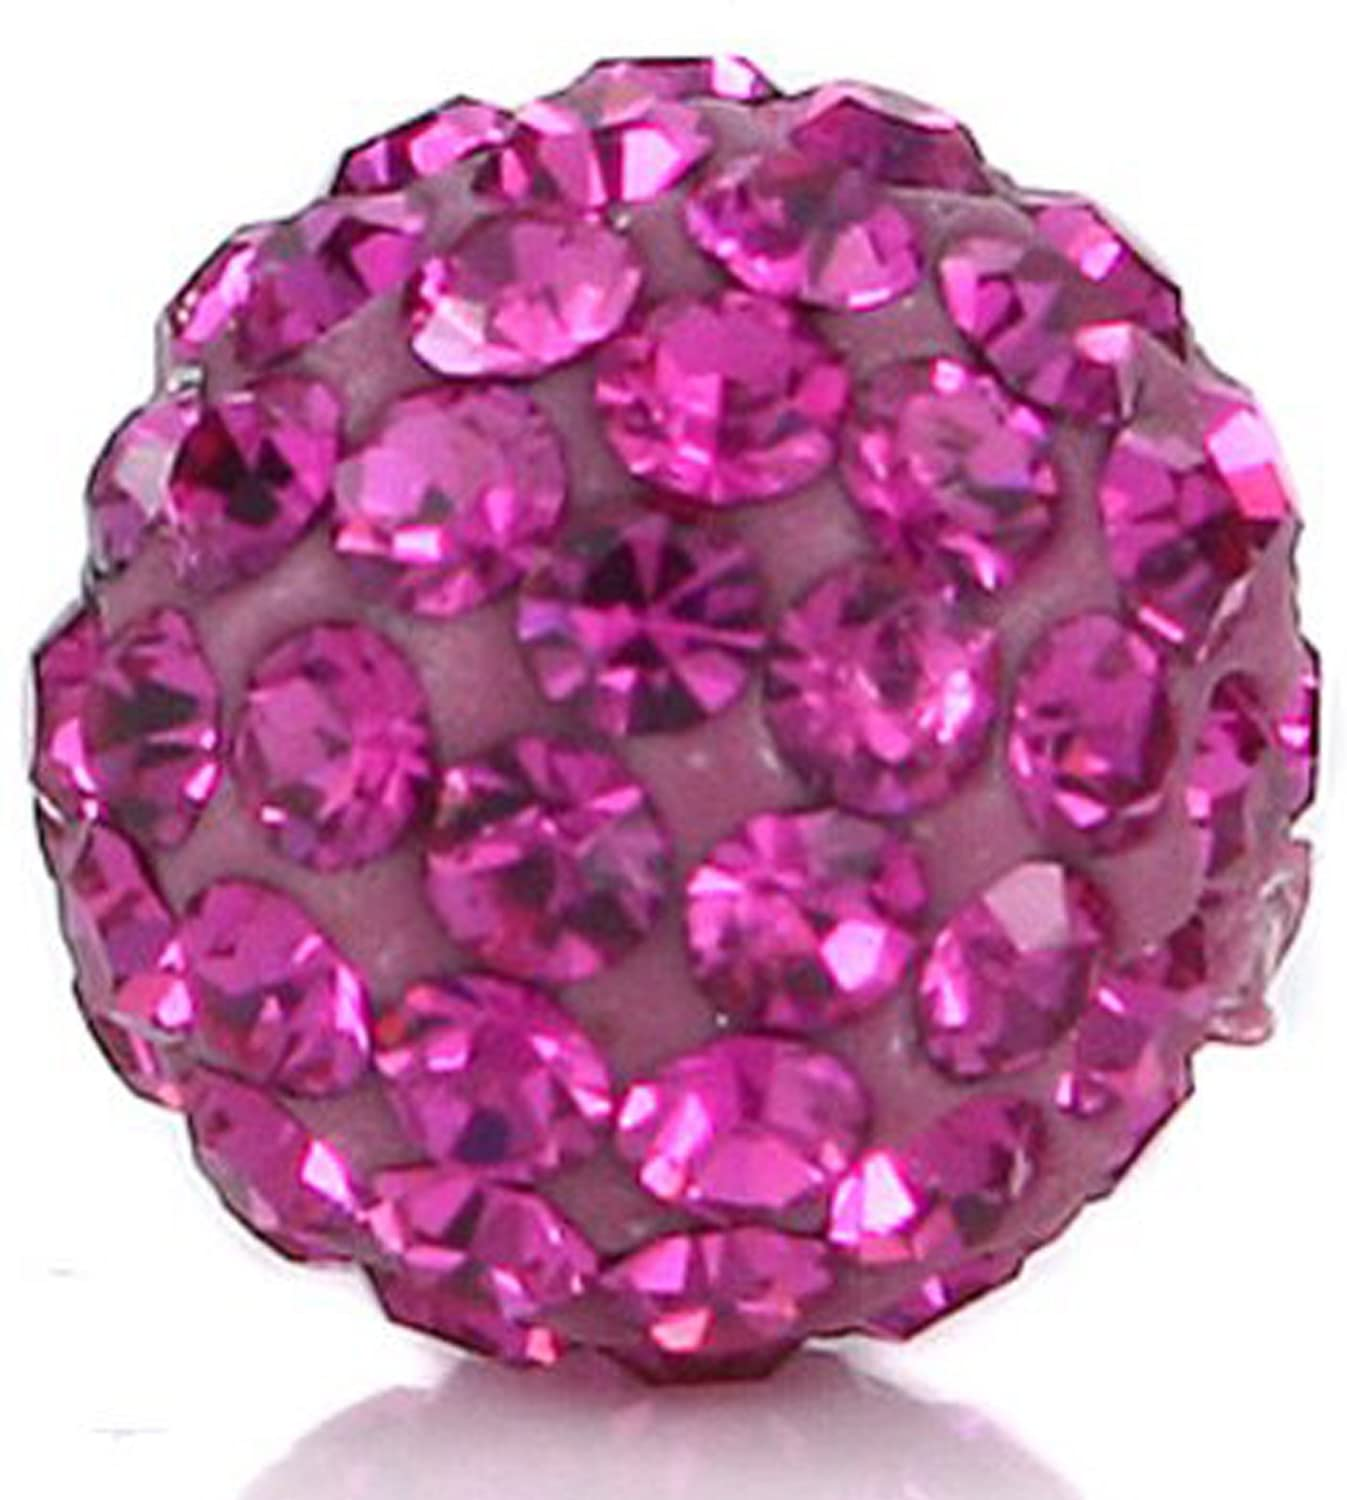 RUBYCA Pave Czech Crystal Disco Ball Clay Beads fit Shamballa Jewelry (20pcs, 12mm, Fuchsia Pink)